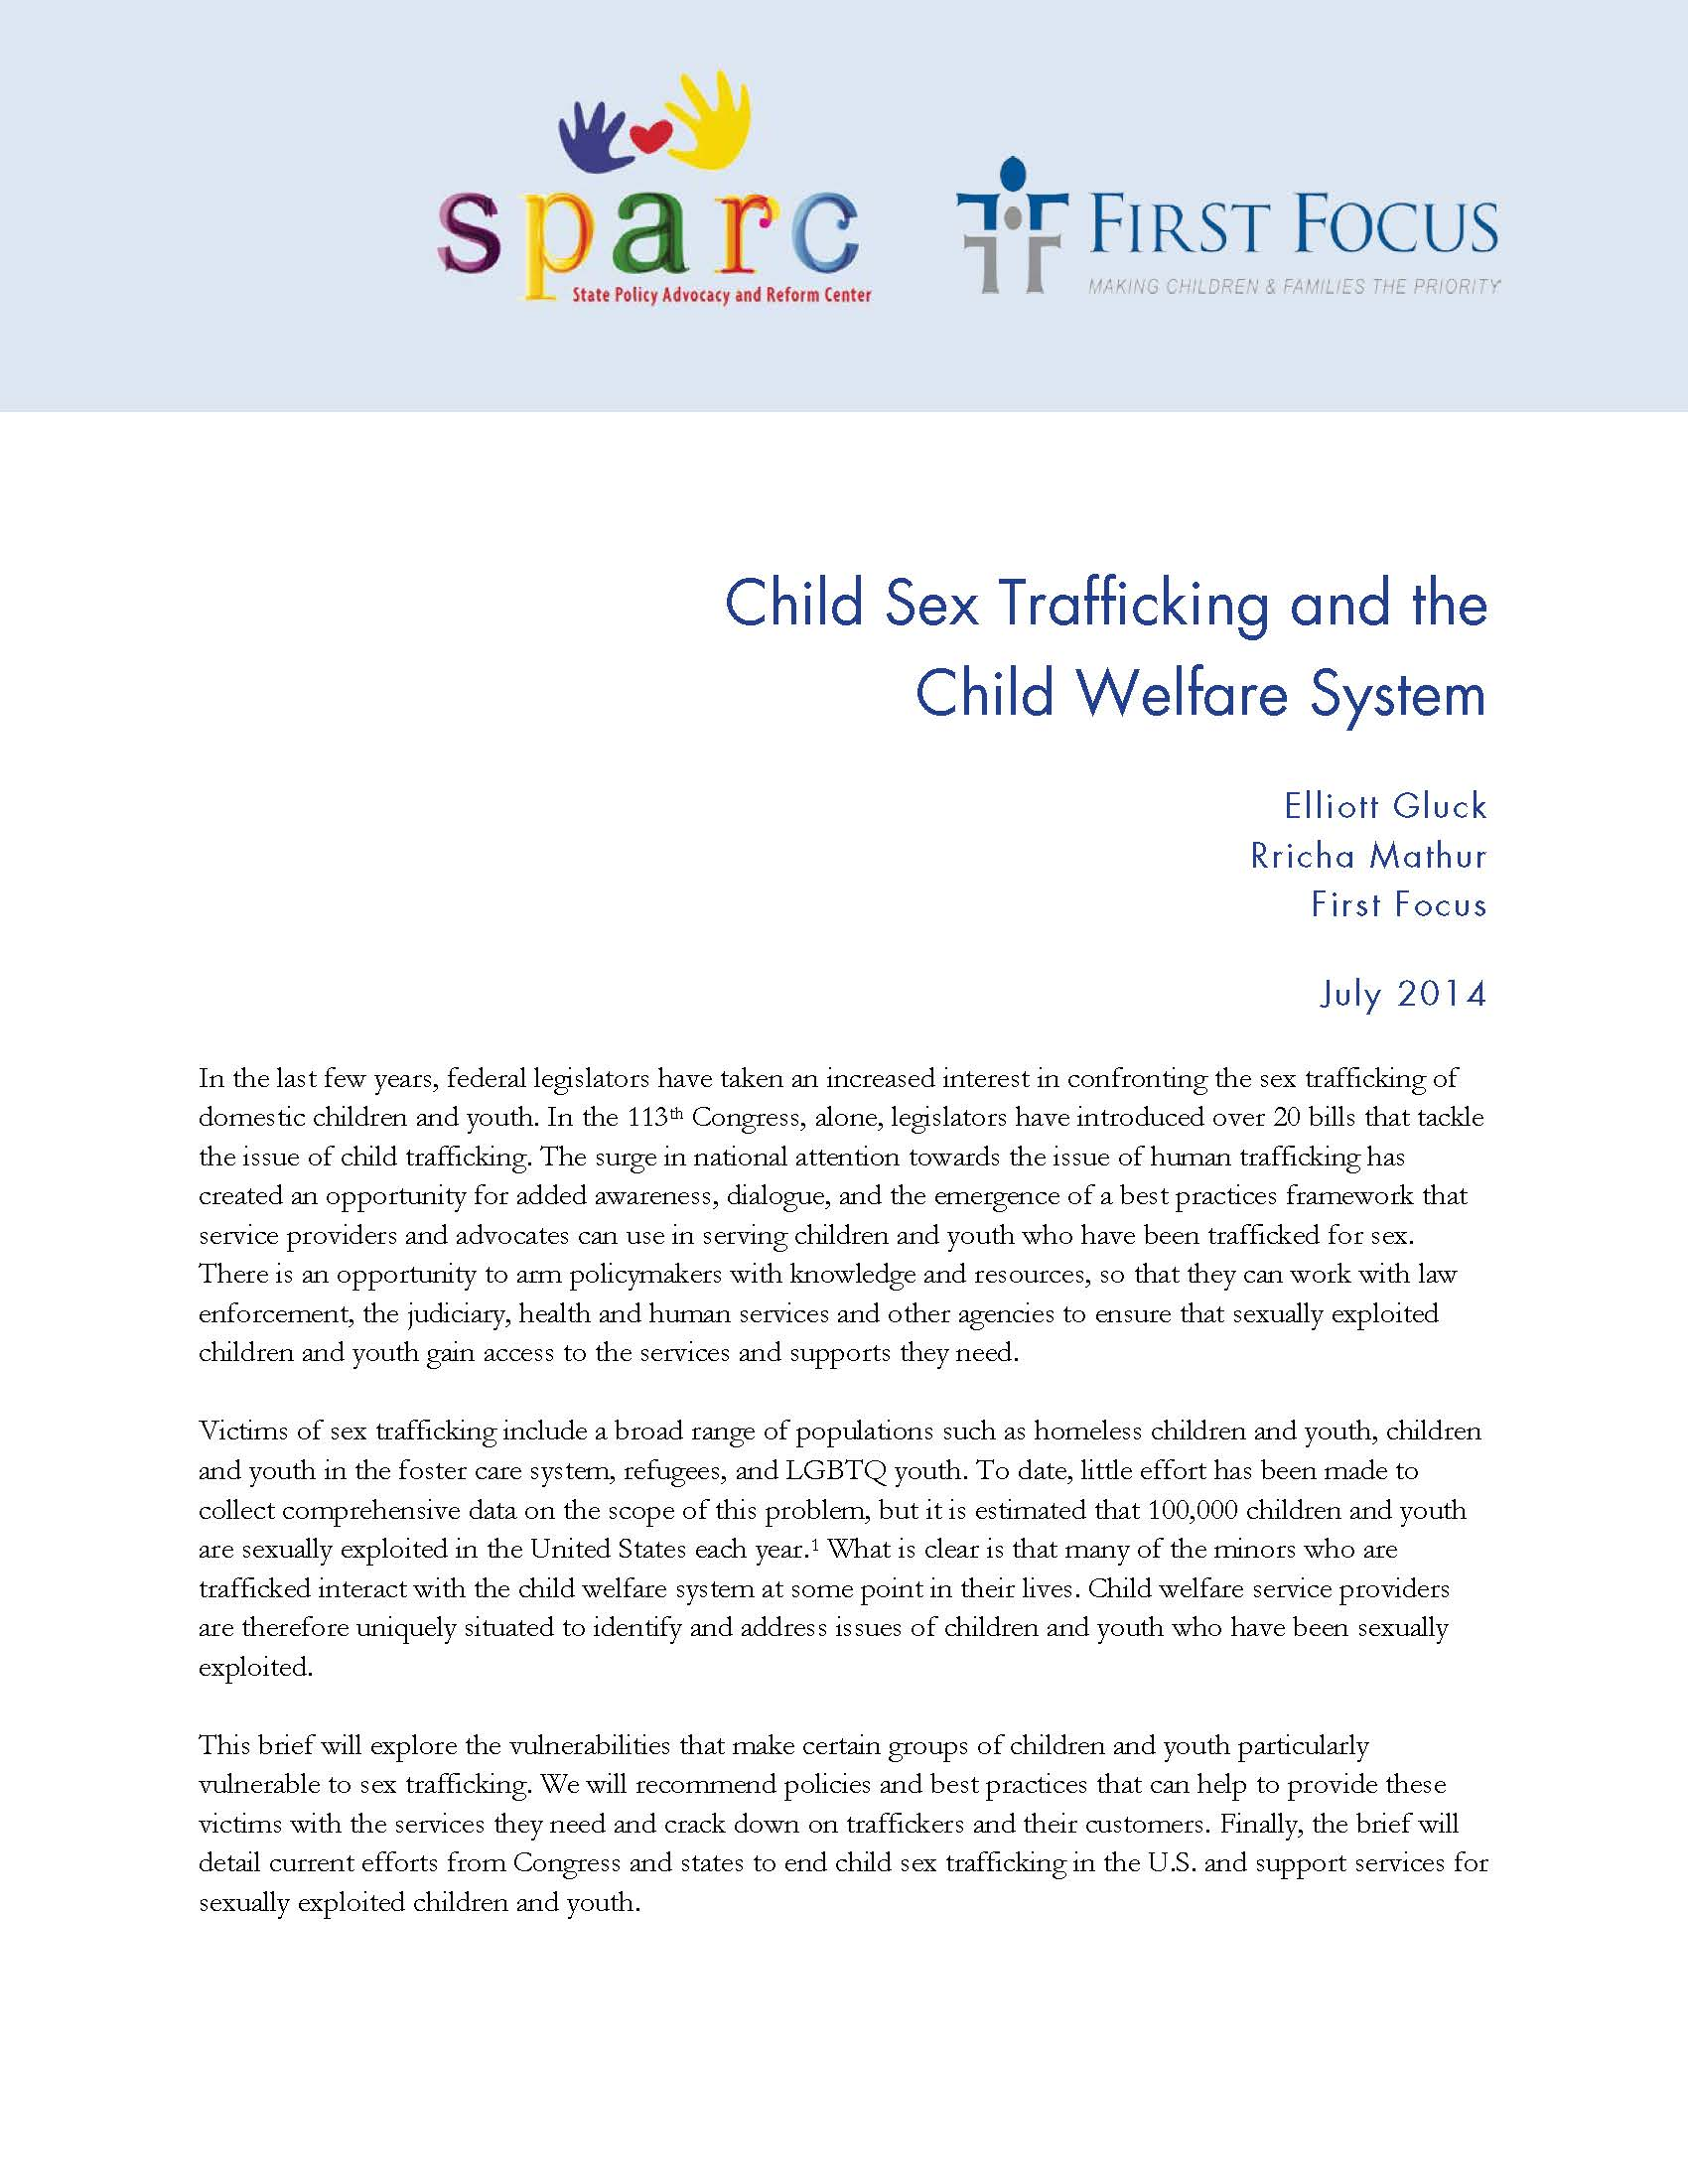 Sex Trafficking and the Child Welfare System_Page_01